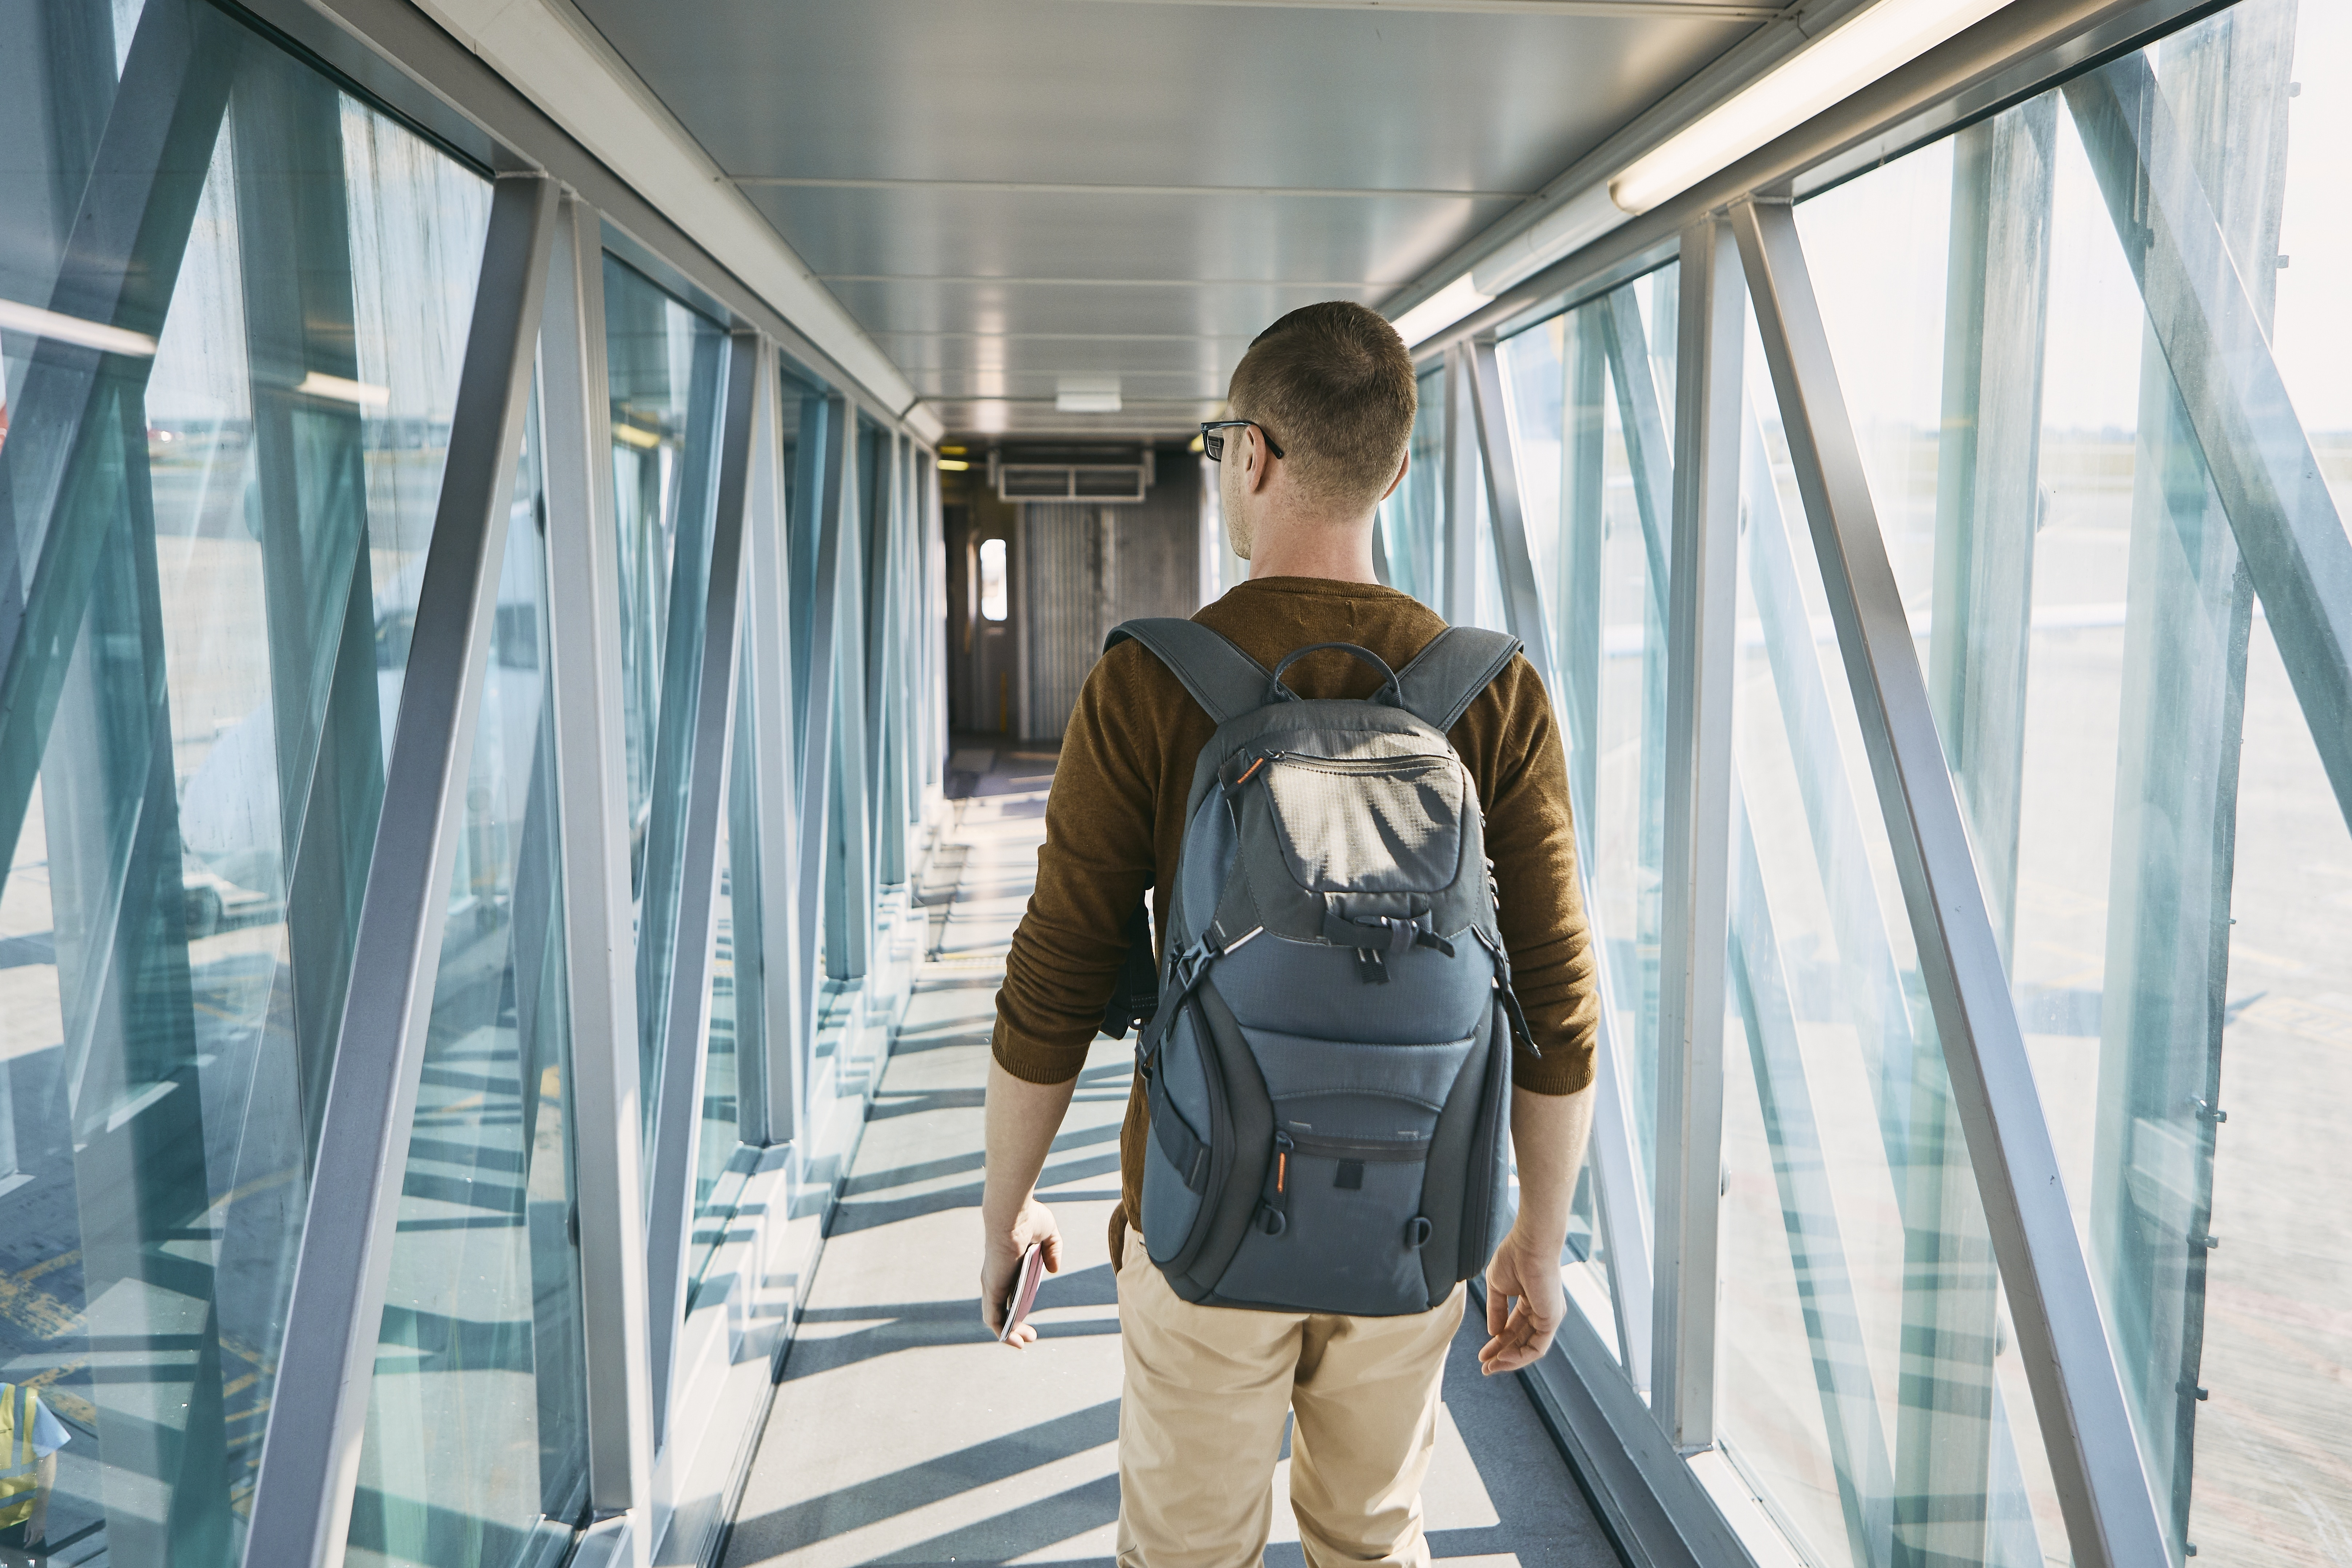 5 Tips to Travel with Just One Bag